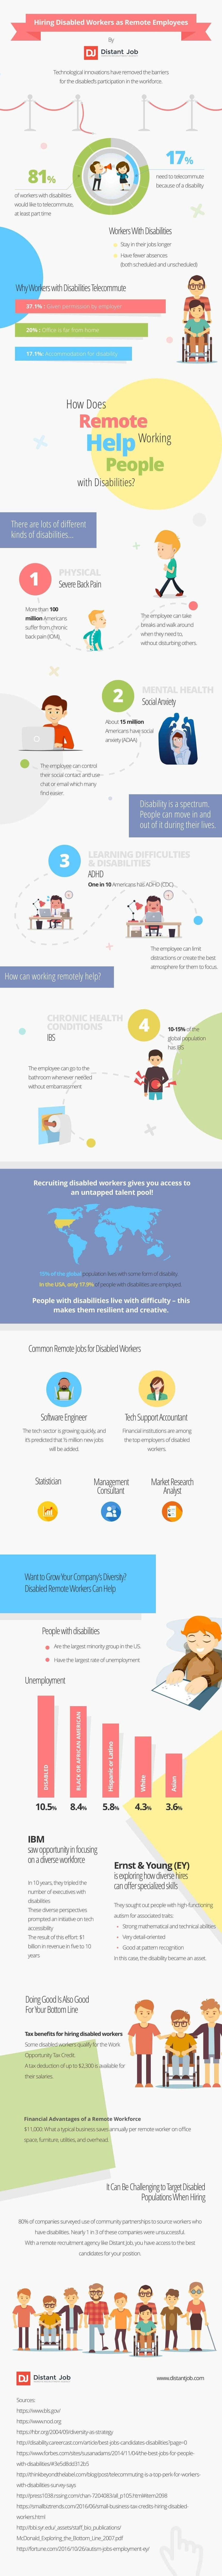 Hiring Disabled Workers as Remote Employees #infographic